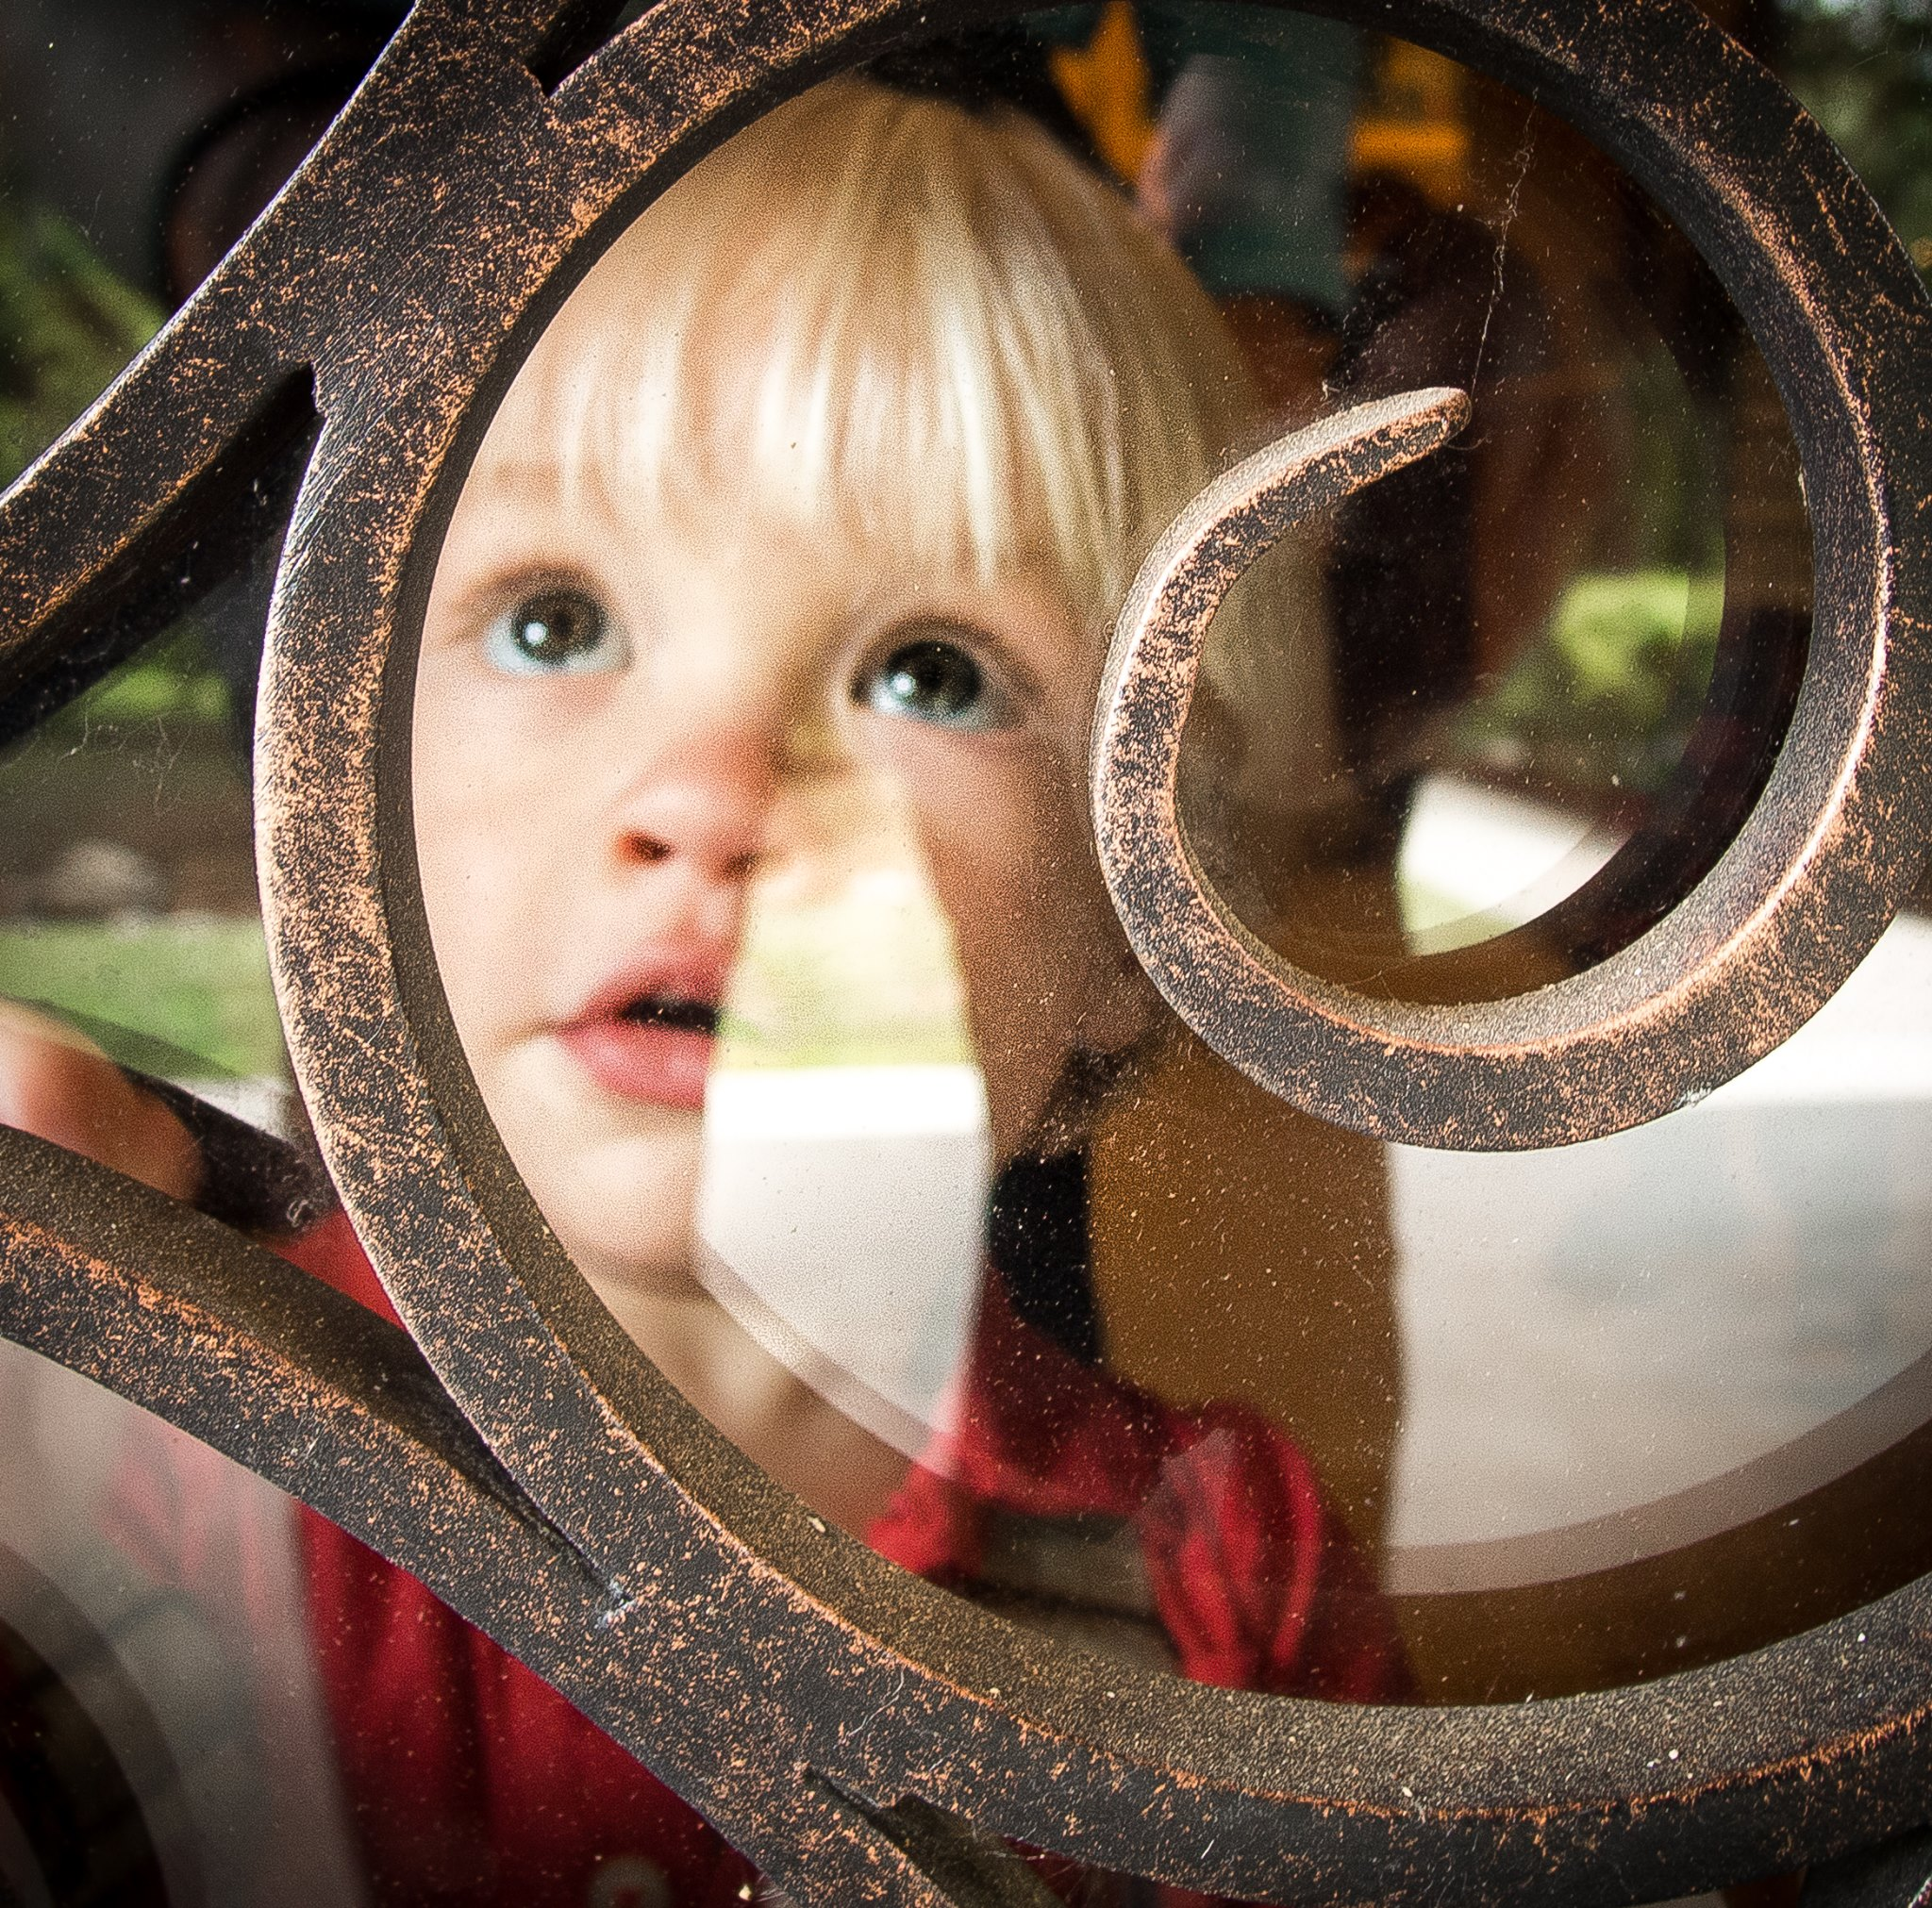 young child peering up through window